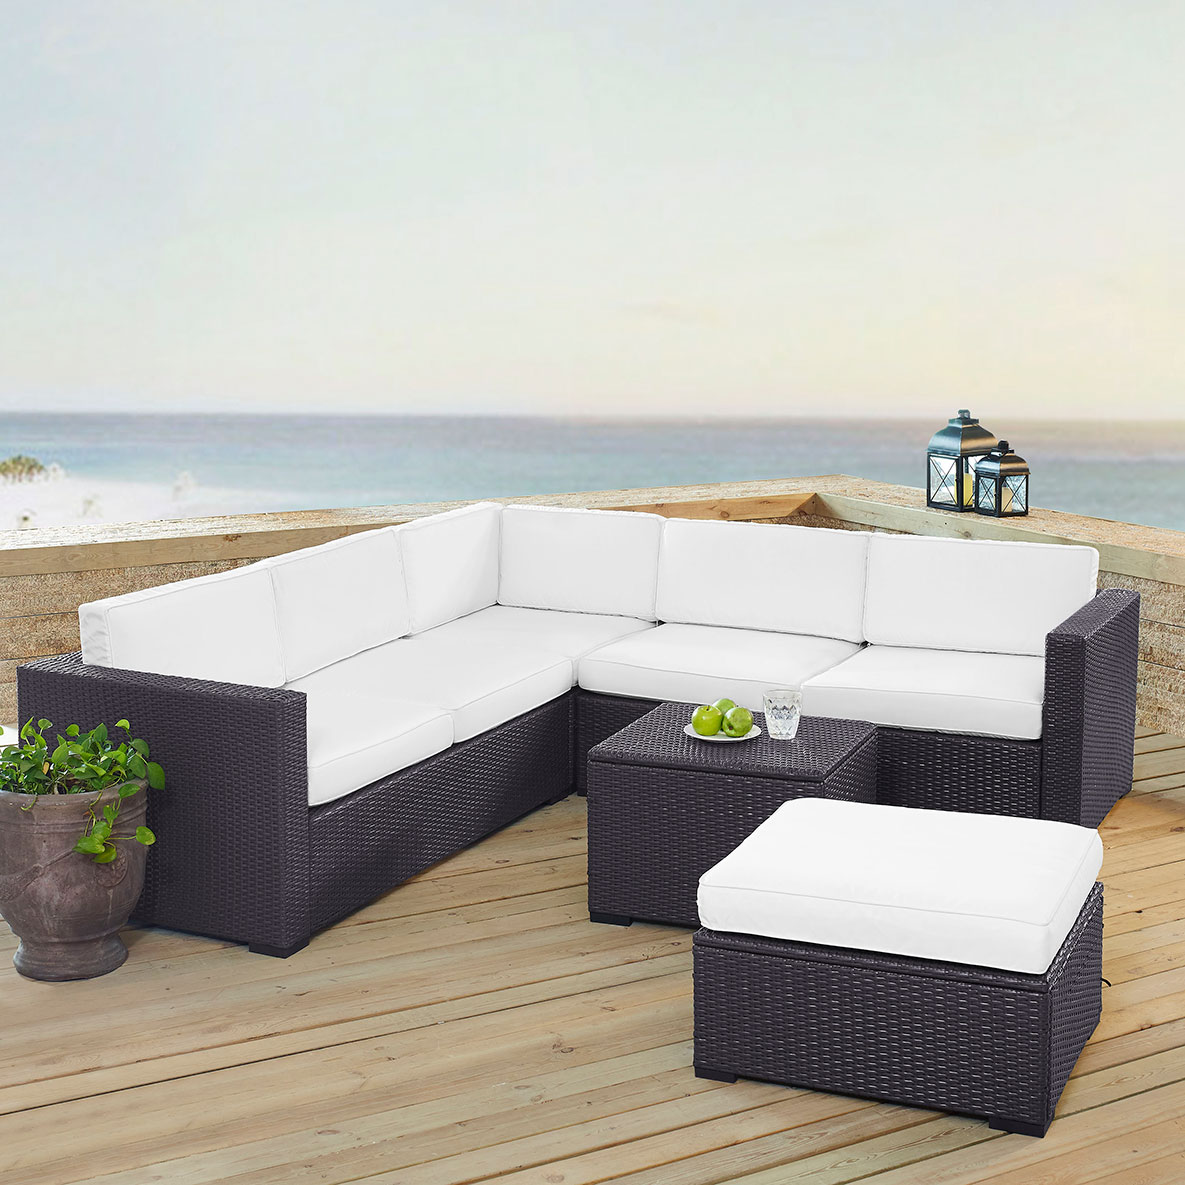 The Isla Outdoor Collection